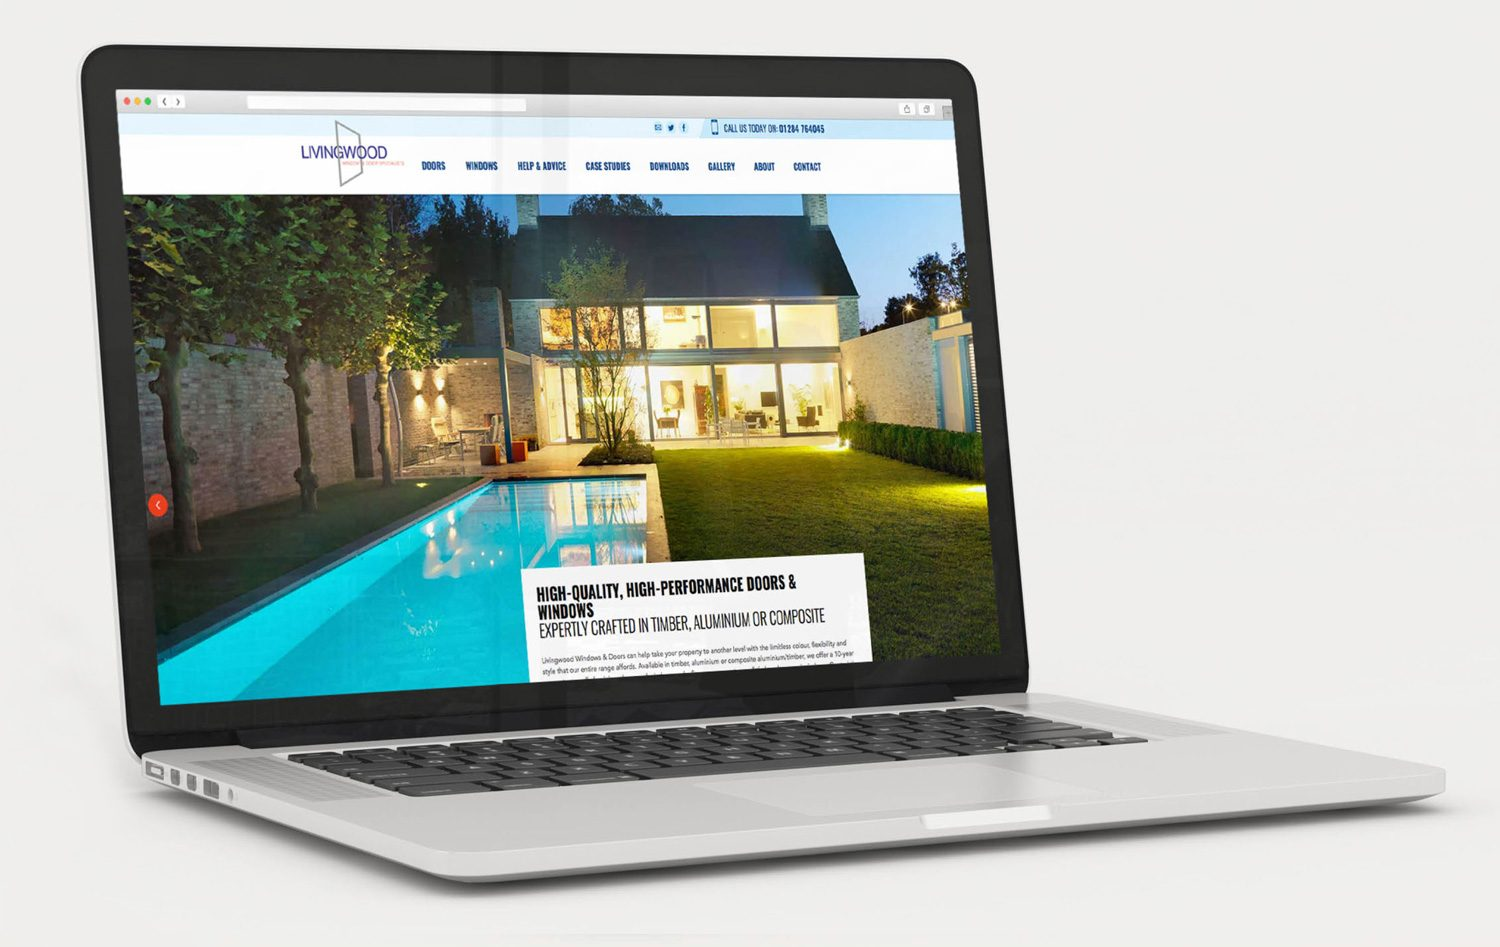 Laptop showing Jump Agency's site for Livingwood